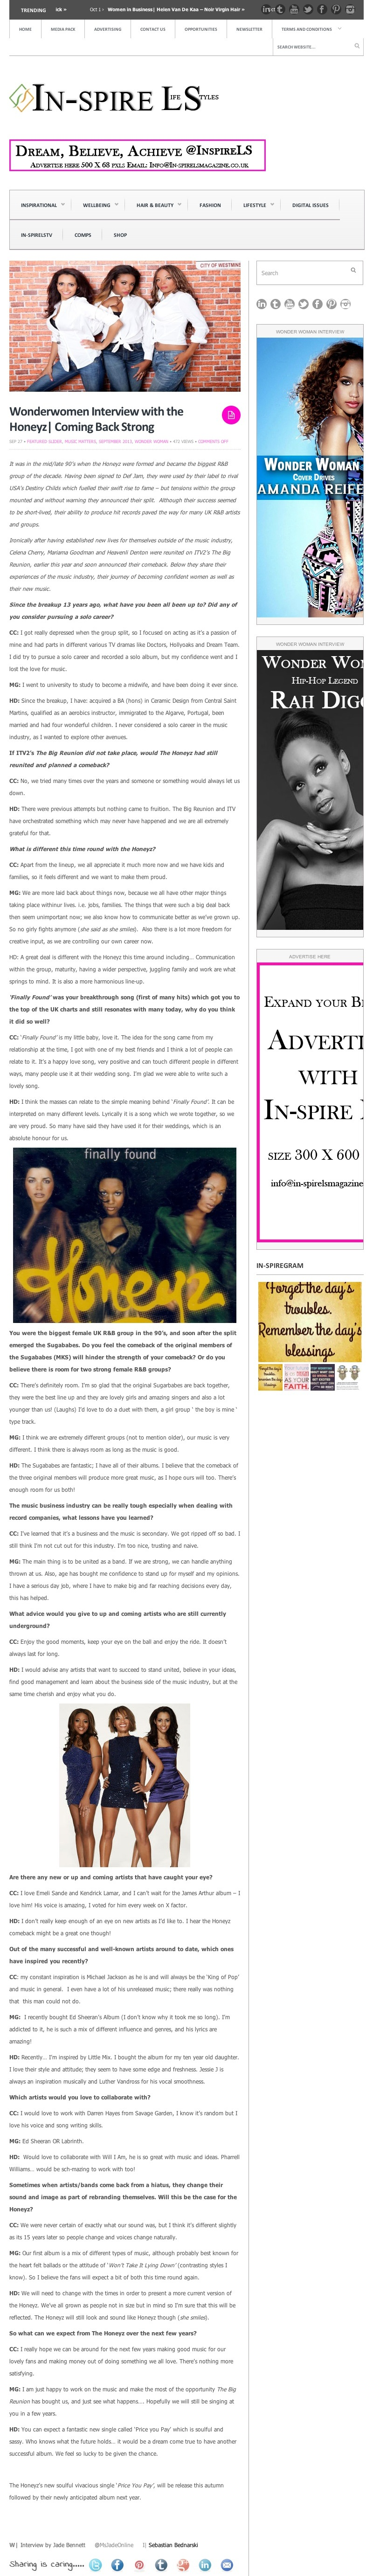 Inspire LS Magazine | London Flair PR